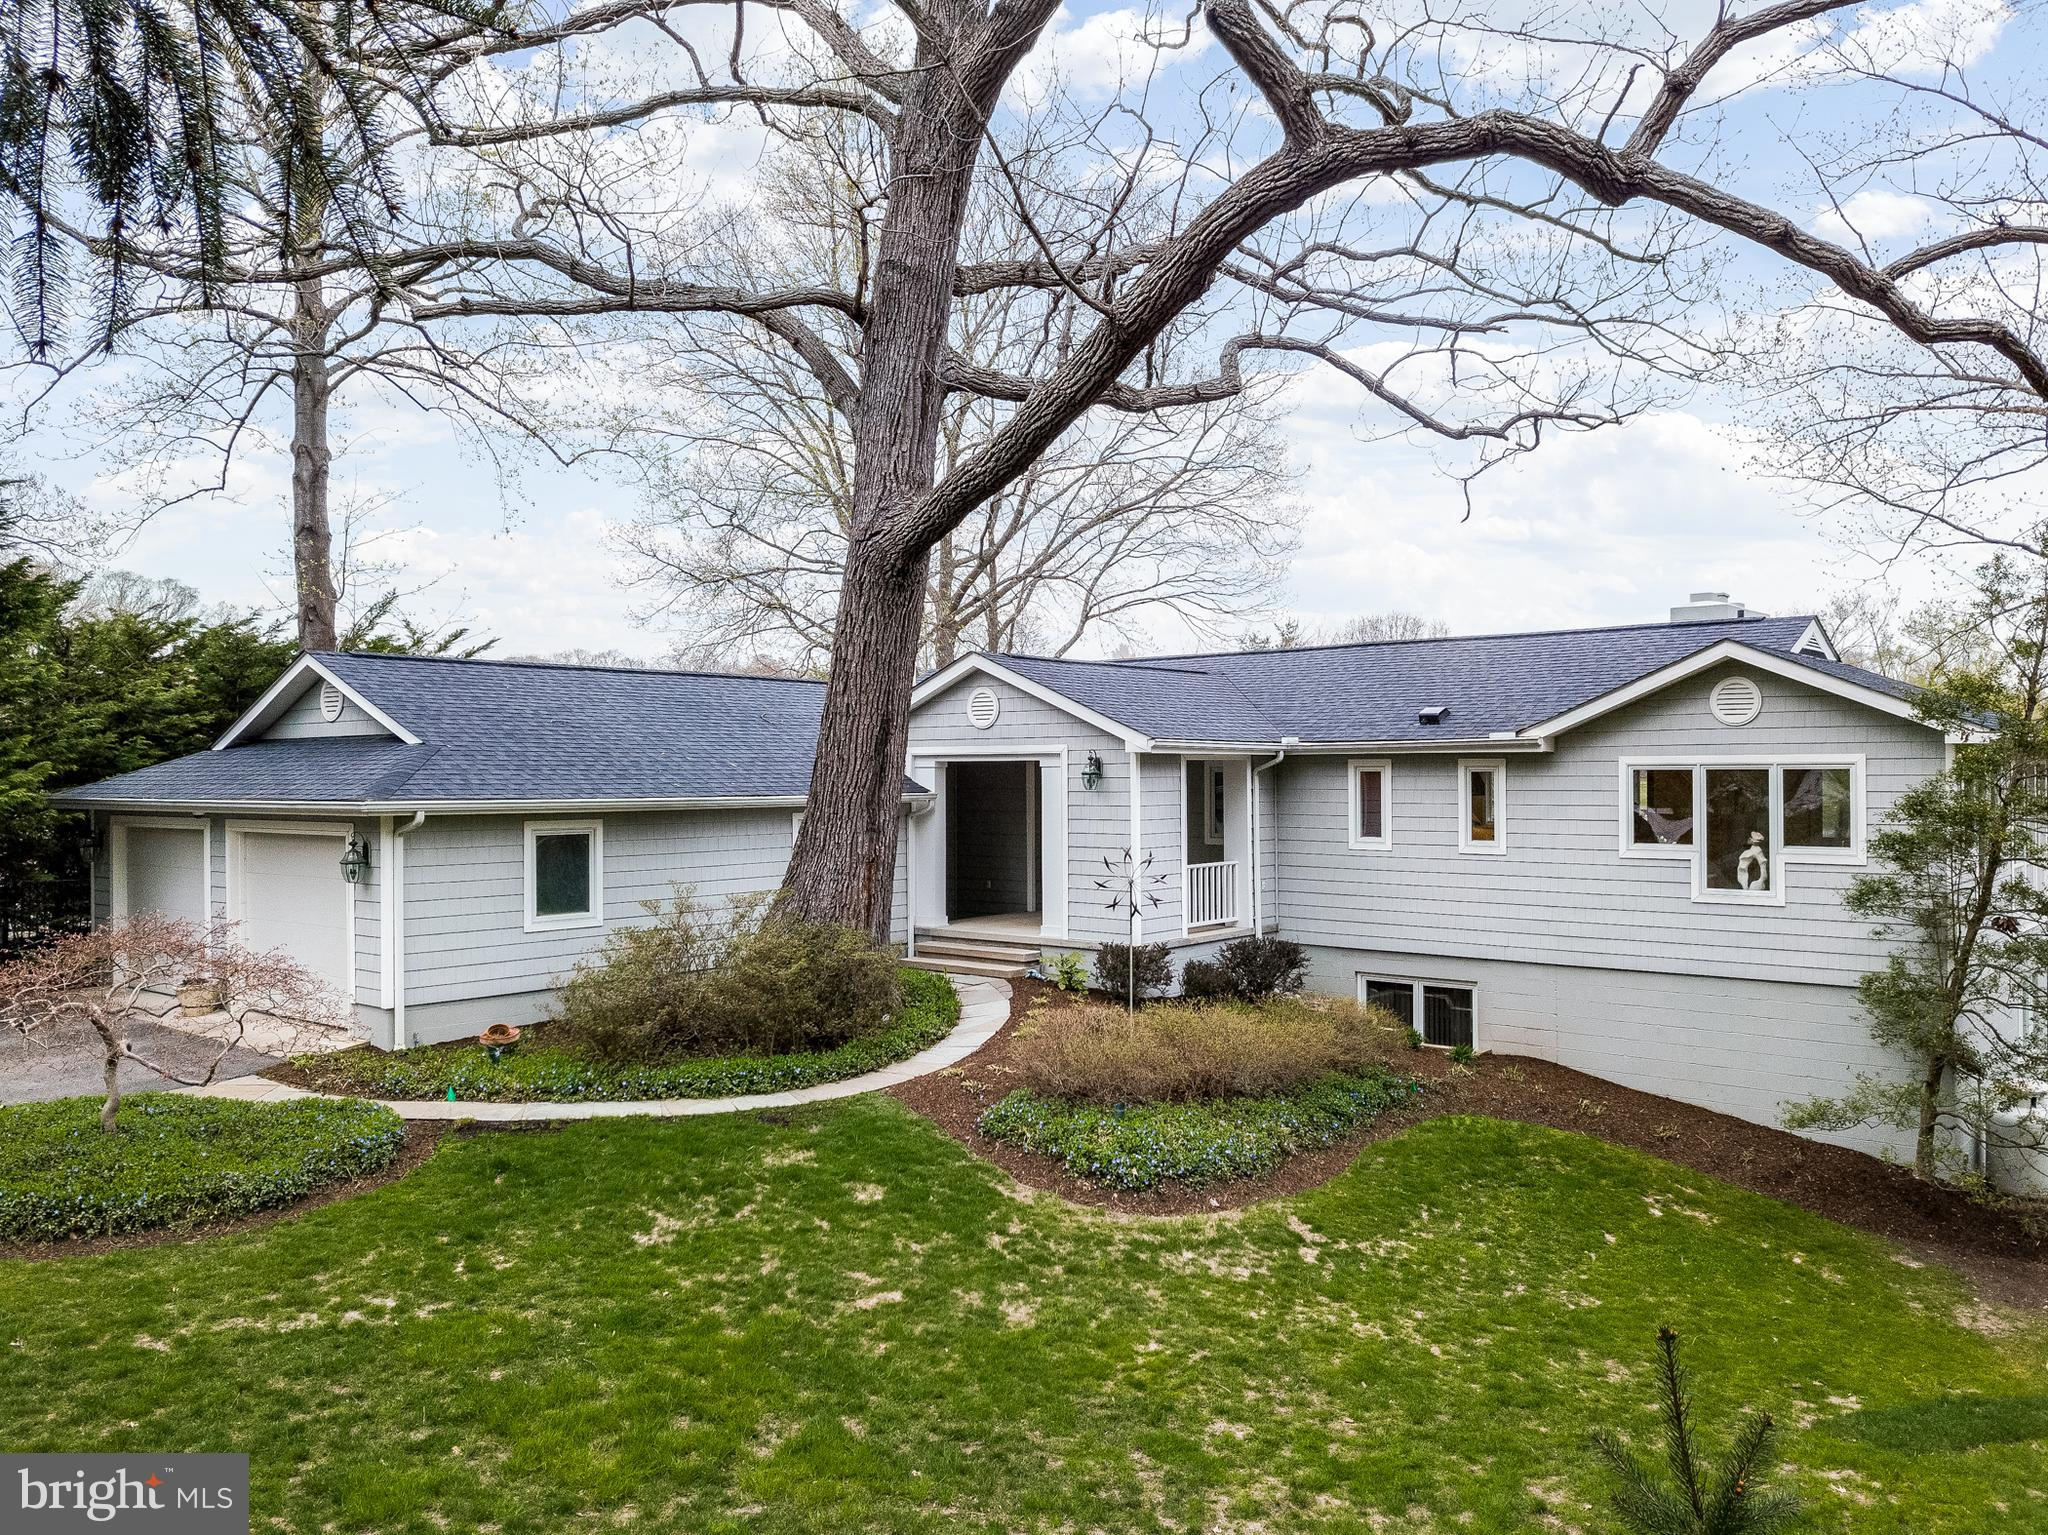 780 N HOLLY DRIVE, ANNAPOLIS, MD 21409